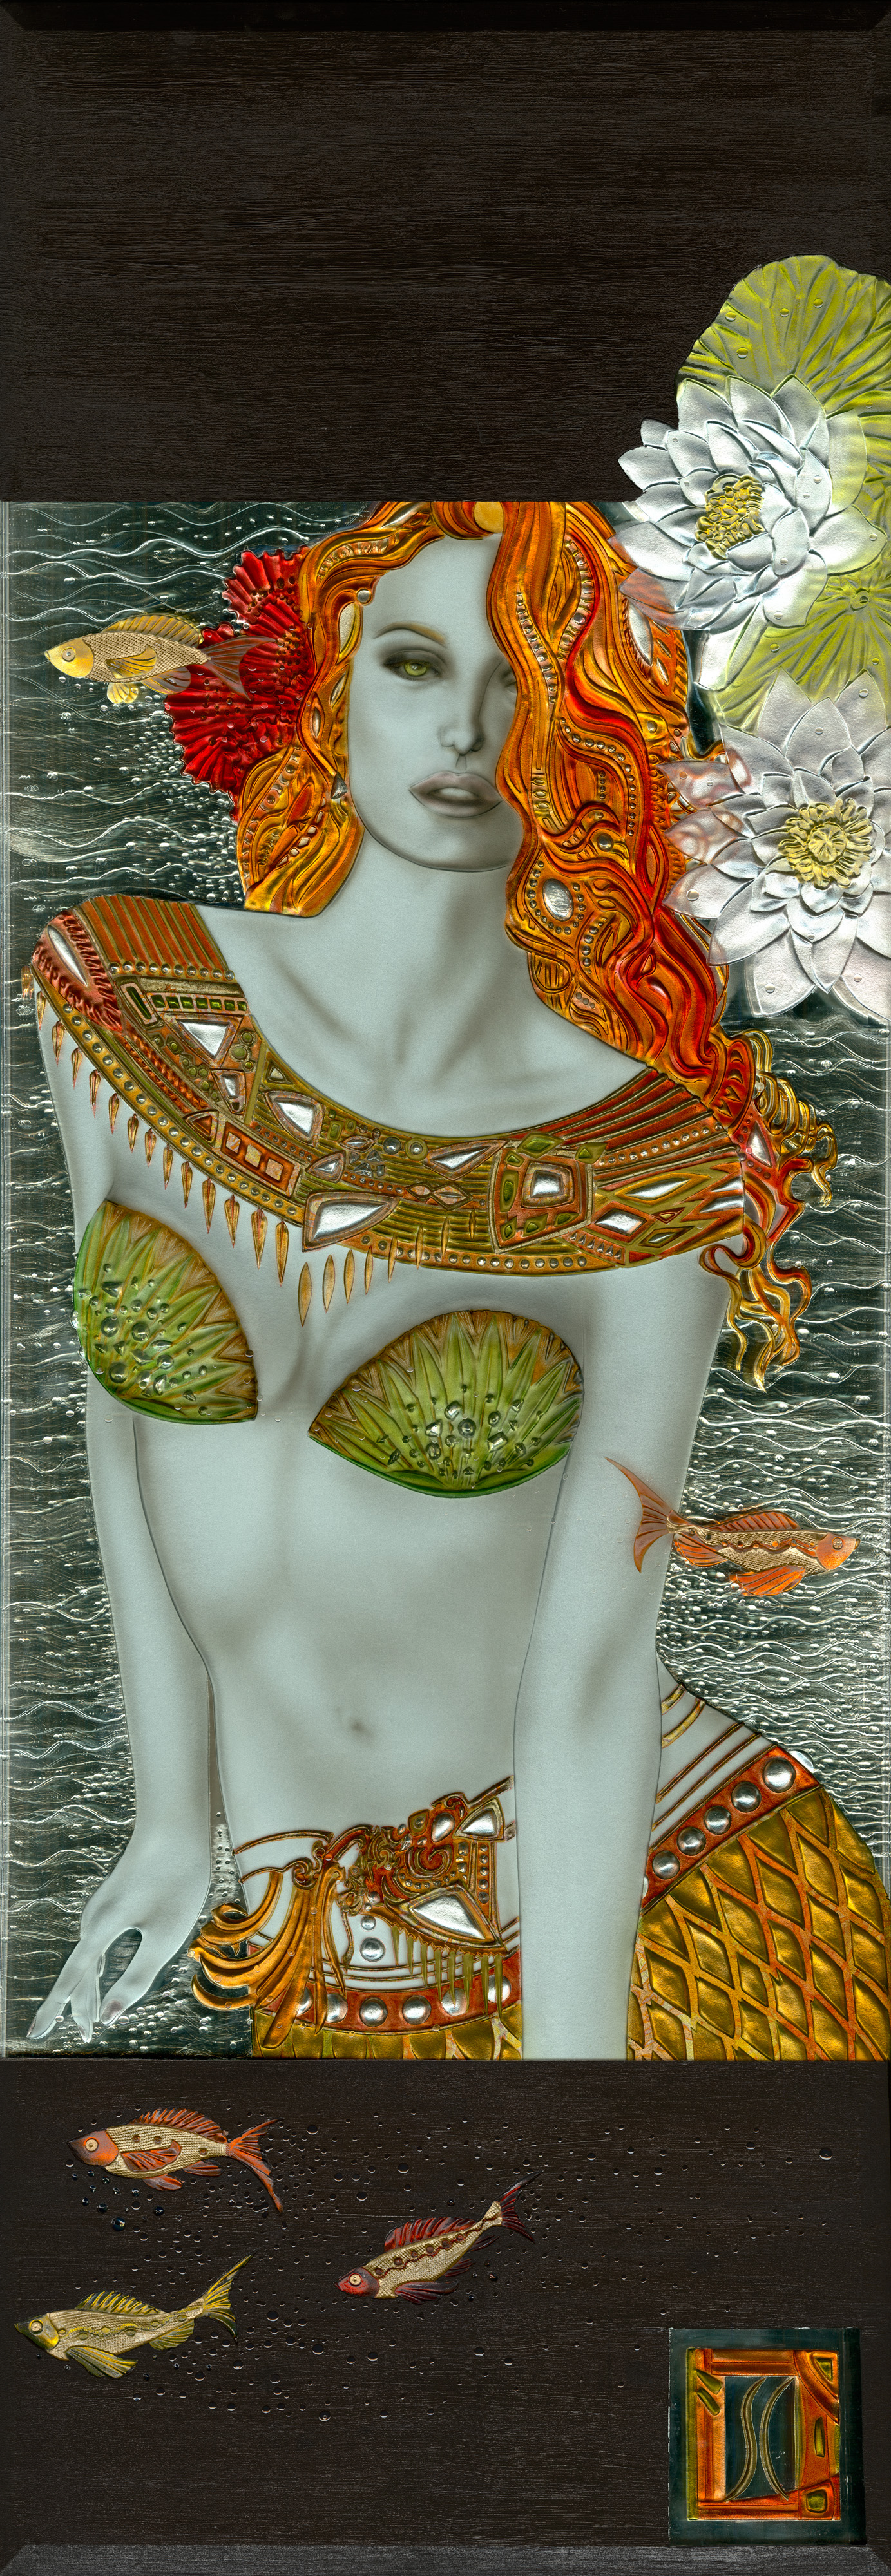 """malena - Dimensions: 36"""" x 74"""" (Framed)Carved 3/4"""" Glass, poured resins, gold leaf, mixed media, and custom framing."""